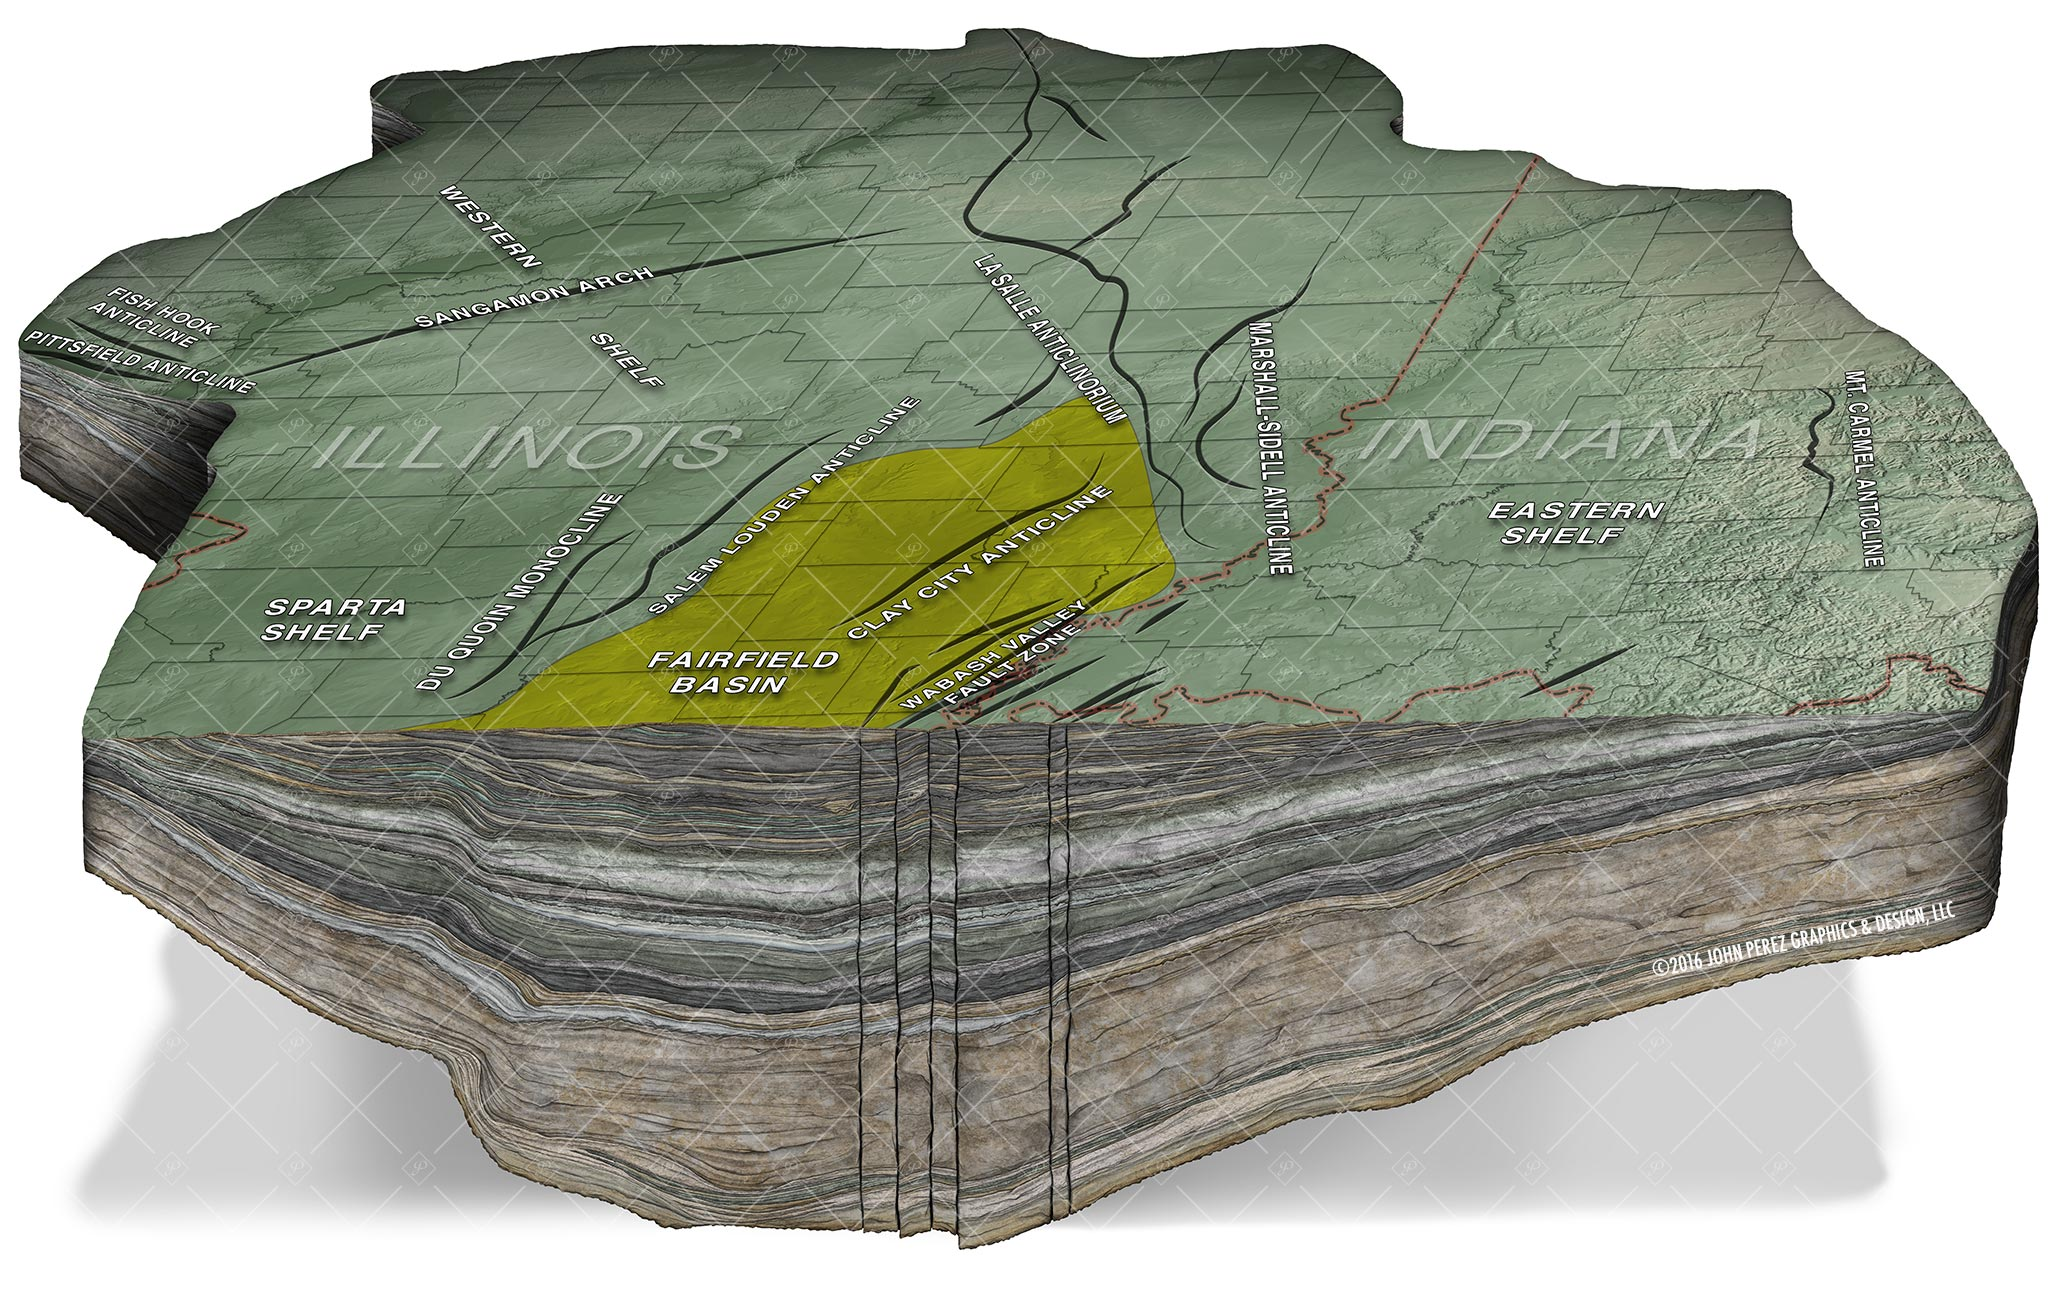 Fairfield Basin Stratigraphy Schematic, drilling geology, oil and gas graphics, oil and gas schematics, john perez graphics, oil and gas illustration